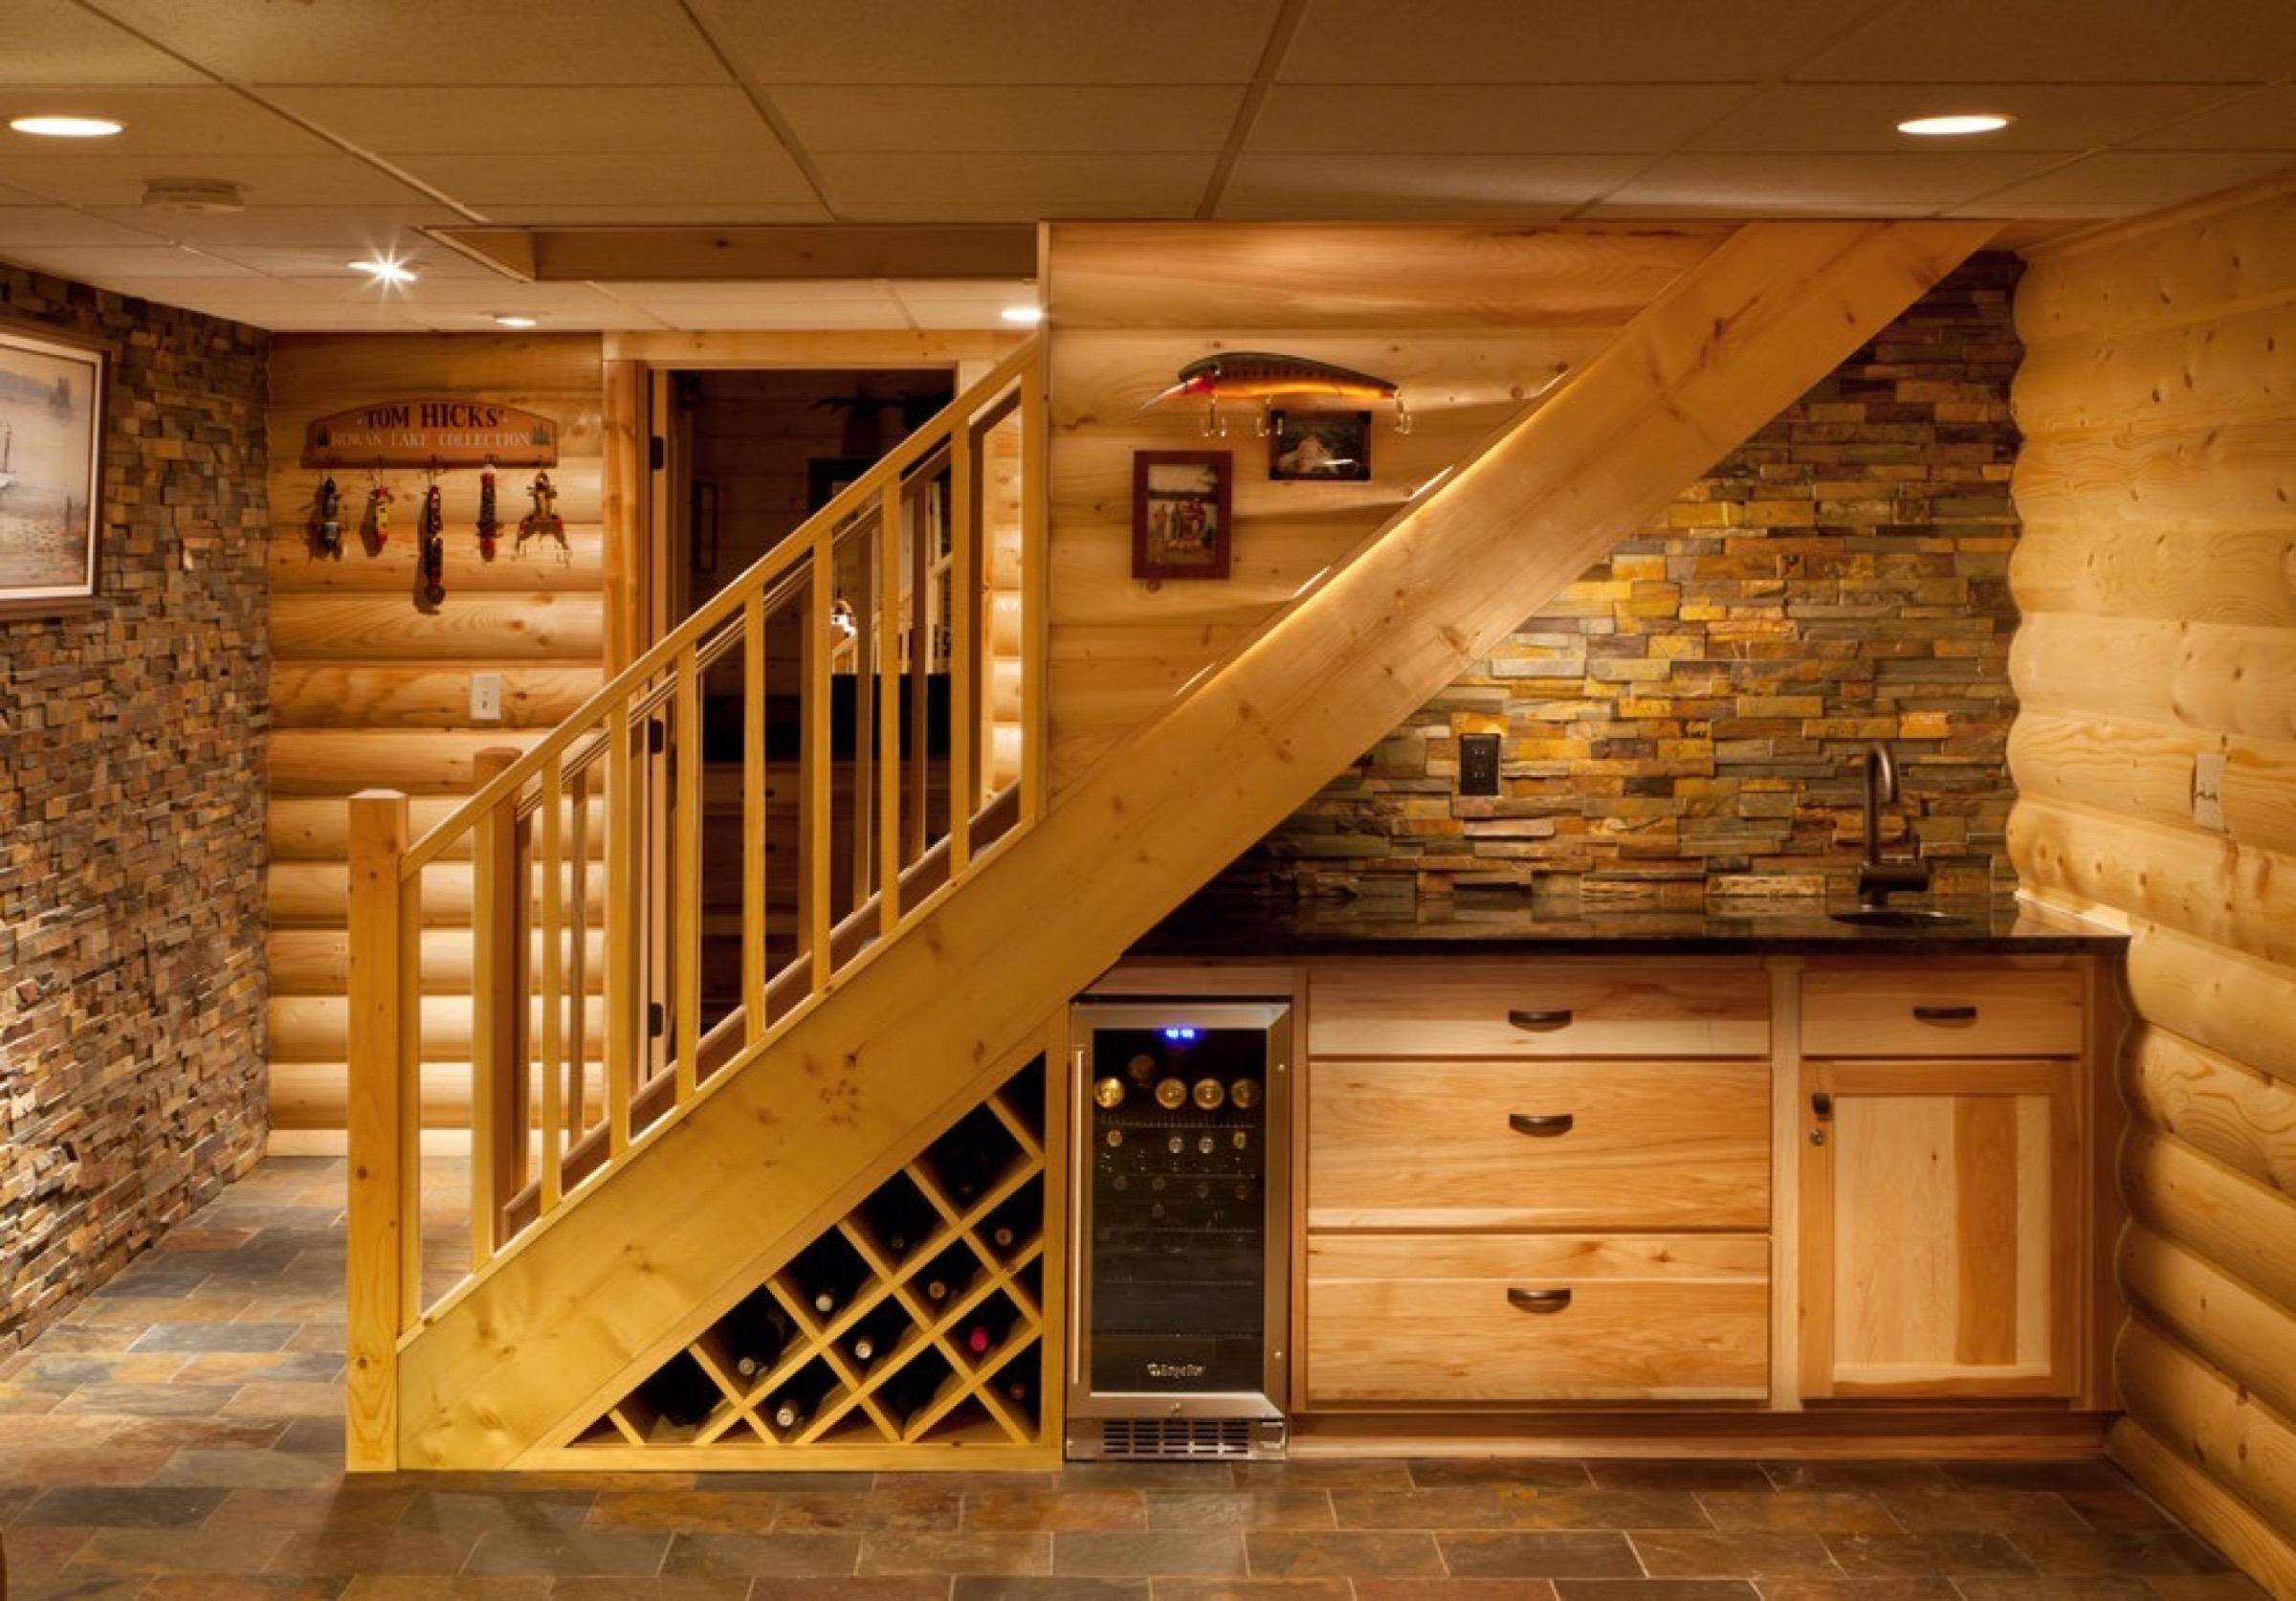 Basement Staircase Installation Costs Updated Prices In 2020 | New Stair Railing Cost | Staircase Ideas | Glass Railing | Staircase Design | Stair Parts | Wooden Stairs